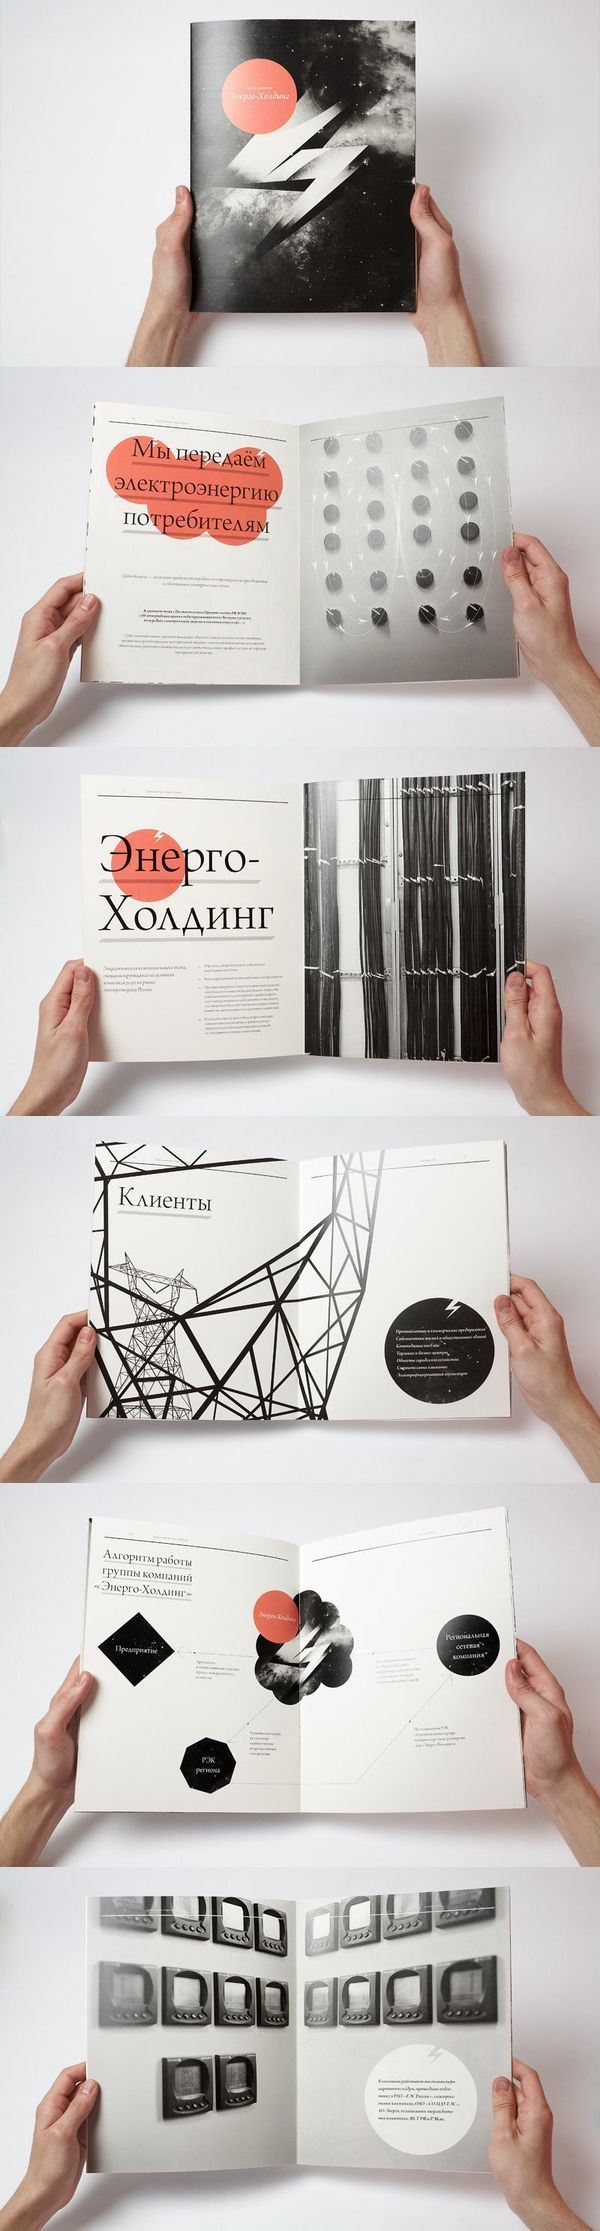 Energo Holding designed by Roman Krikheli, Editorial Design